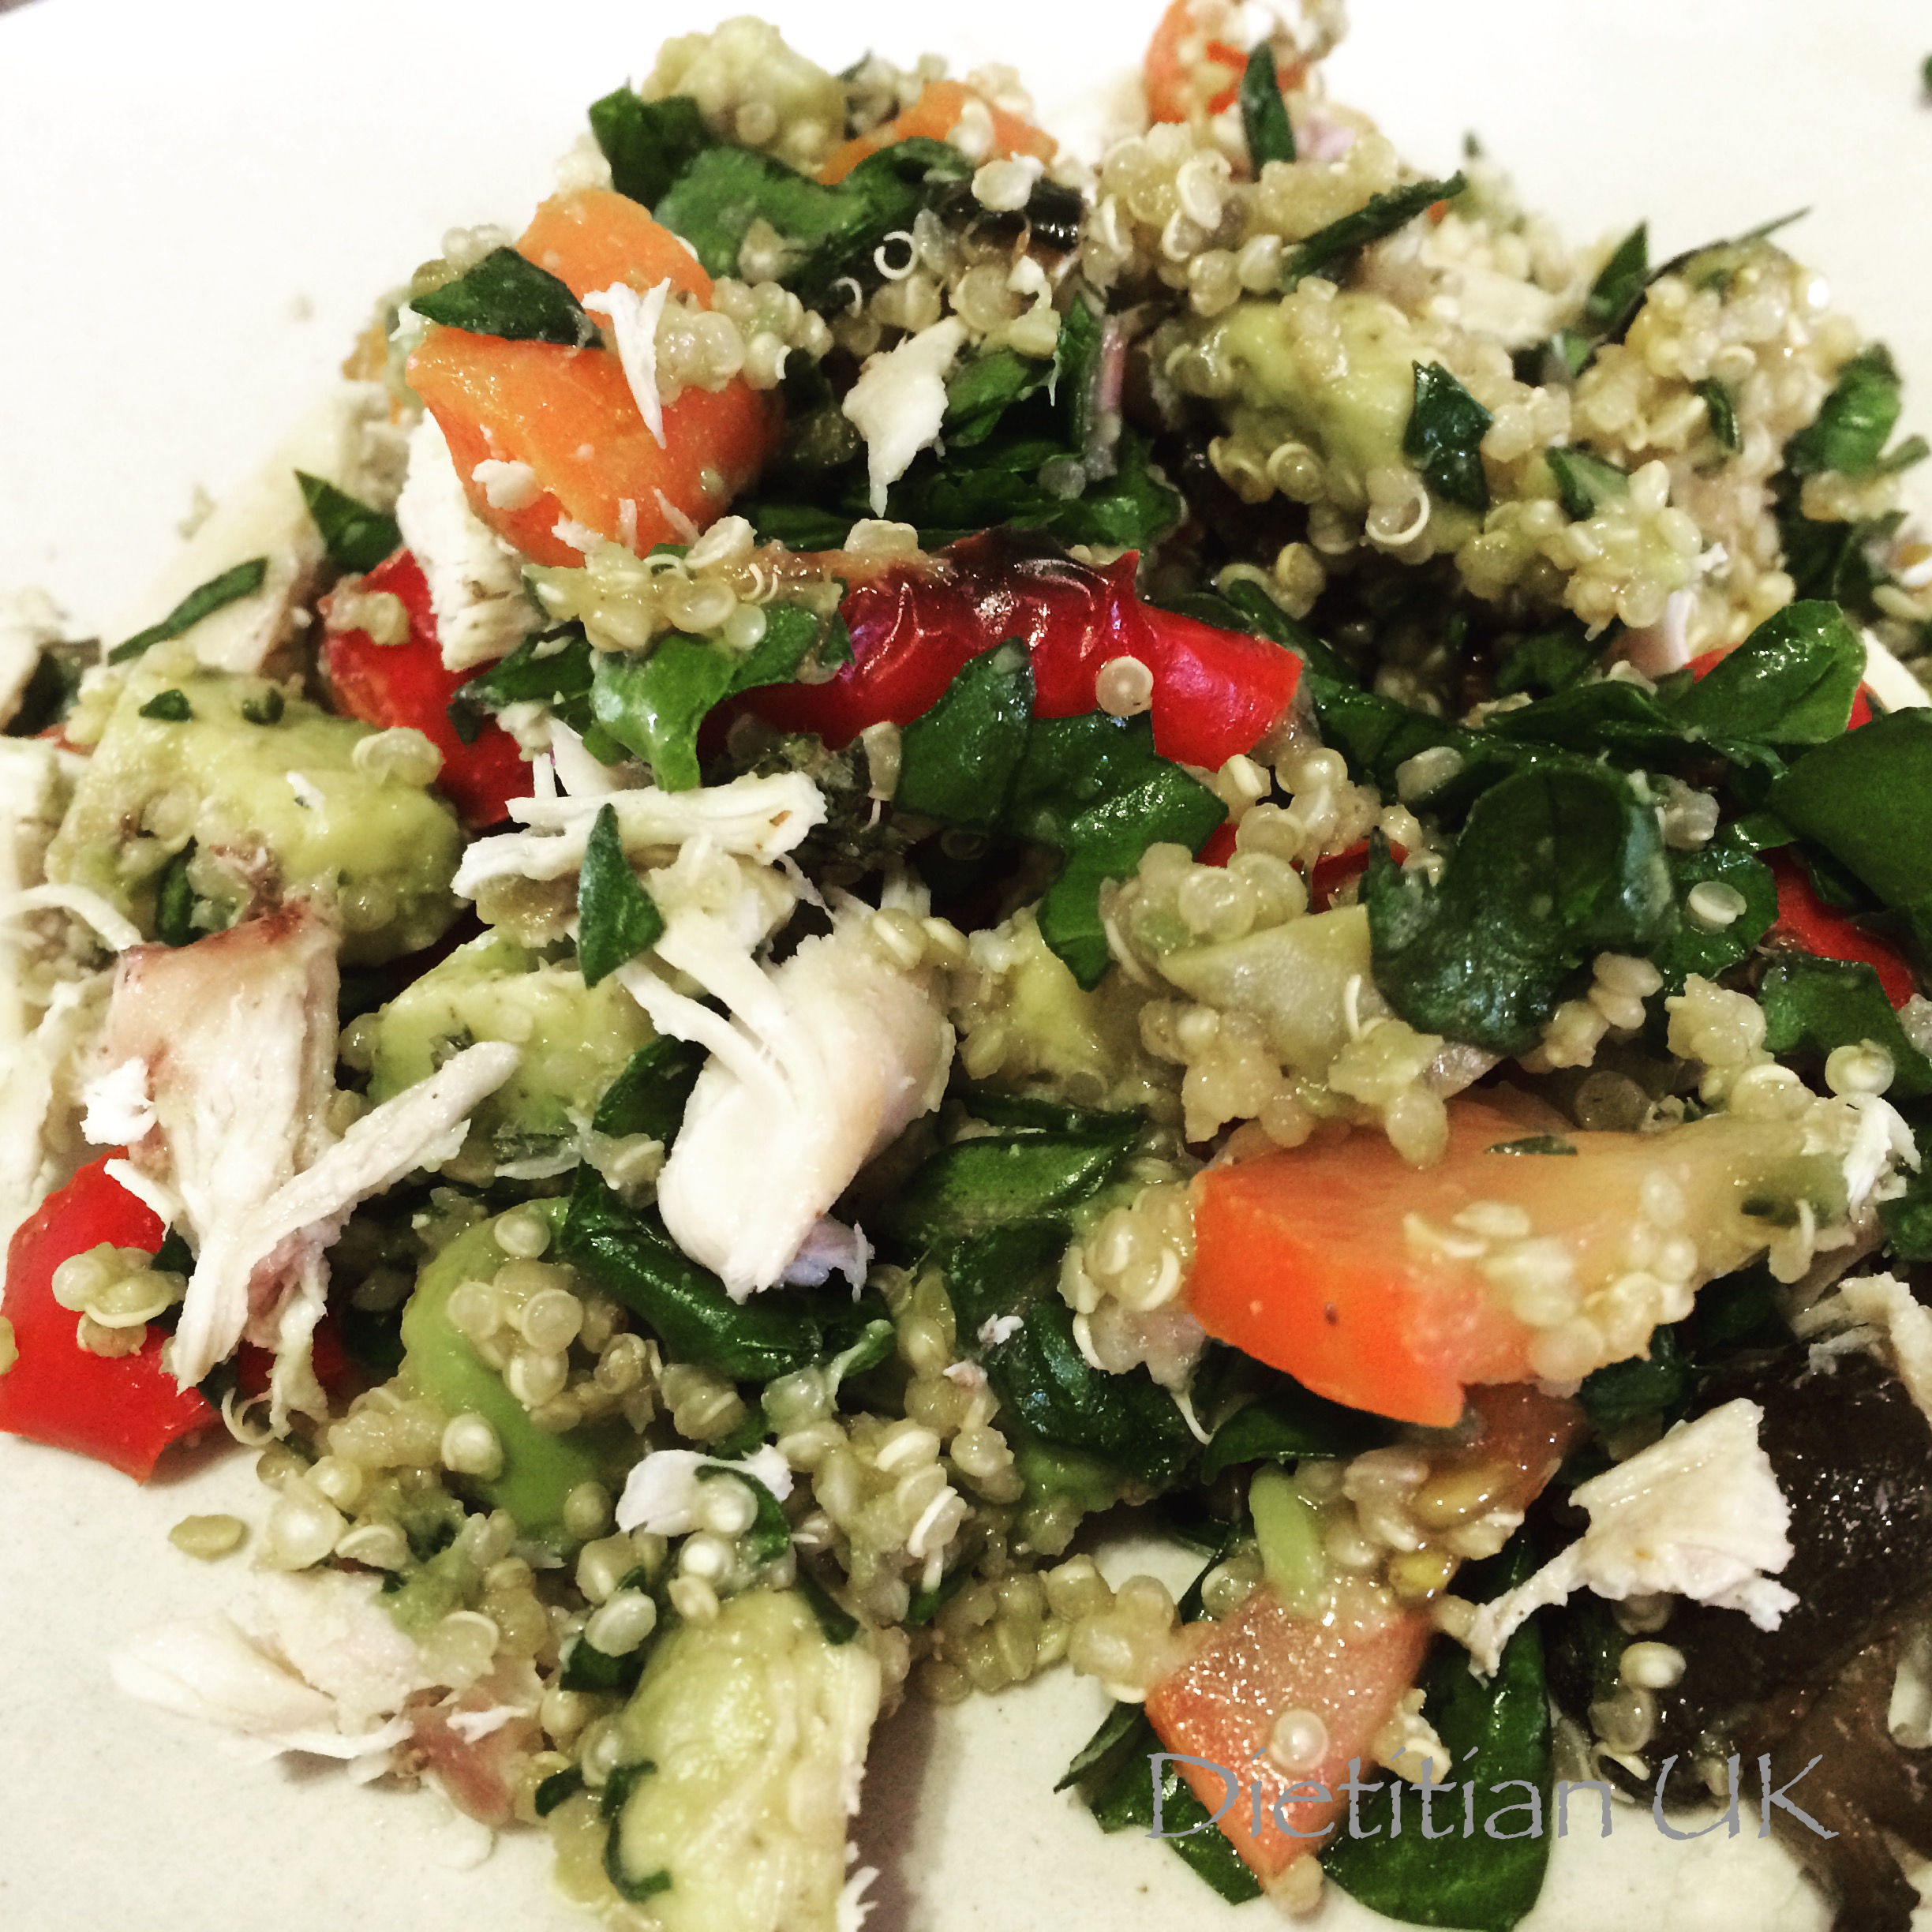 Dietitian UK: Chicken and Vegetable Quinoa Salad